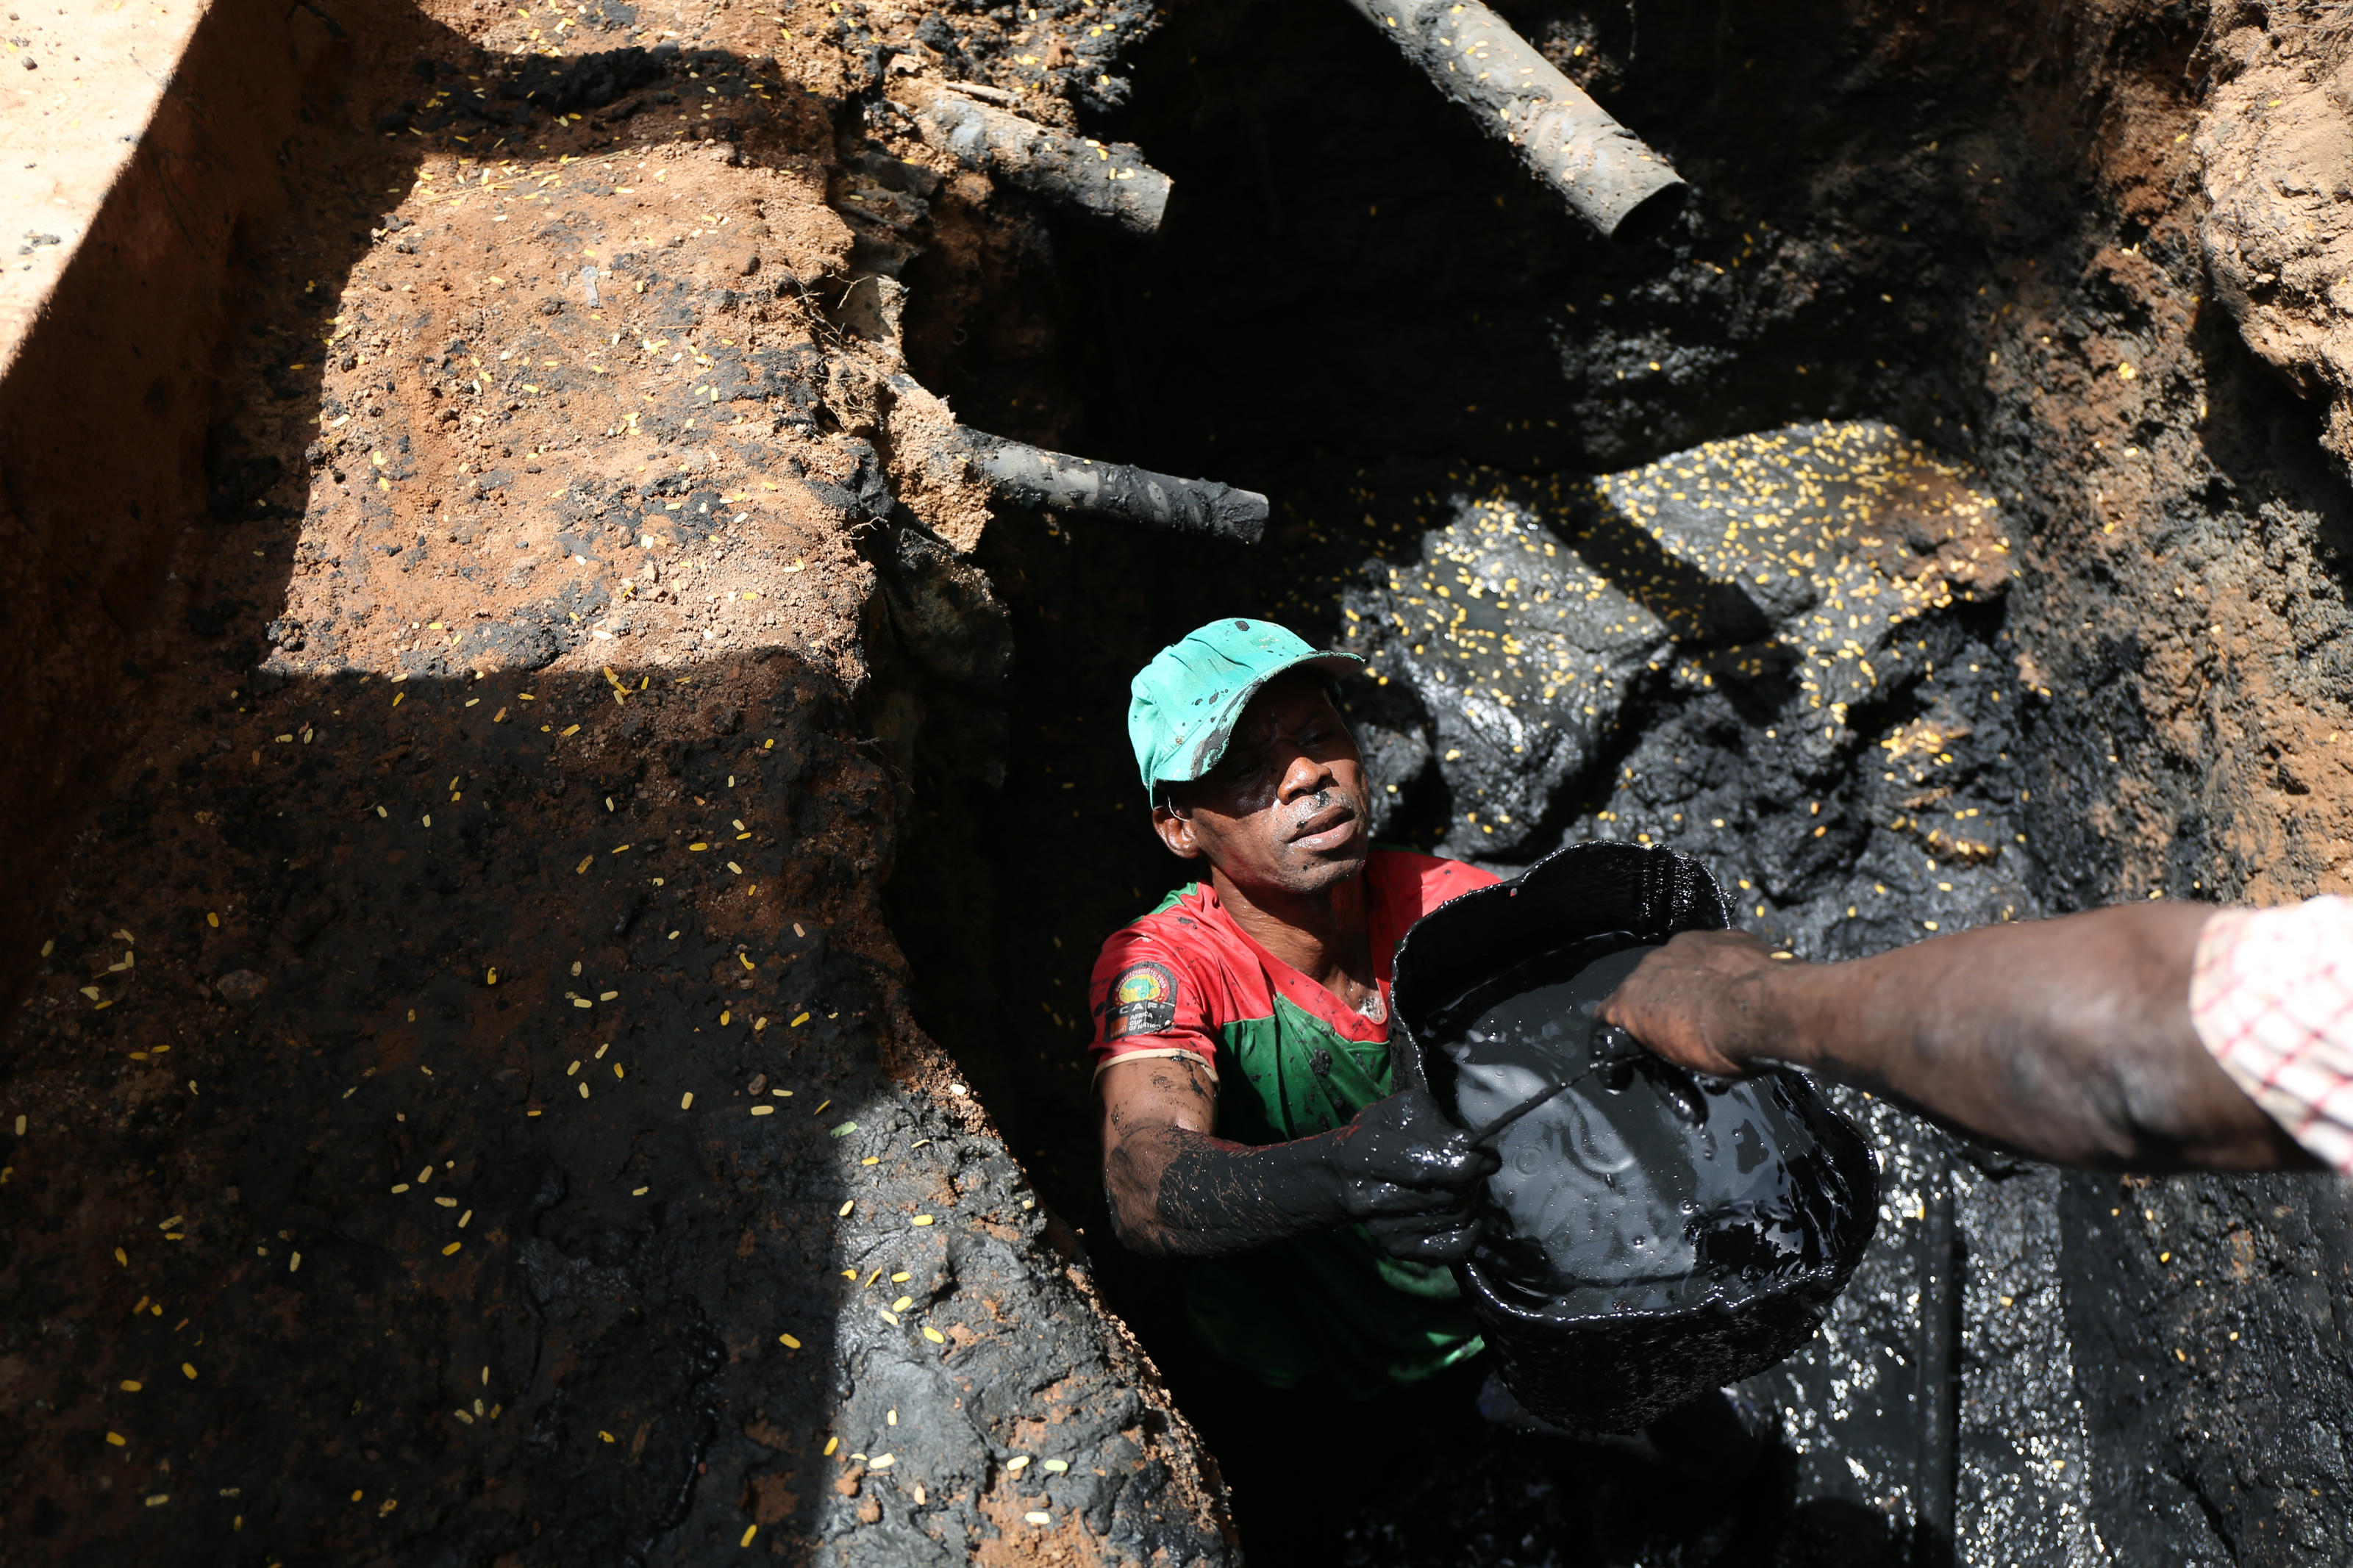 Wendgoundi passes buckets of waste out of the pit to his co-worker